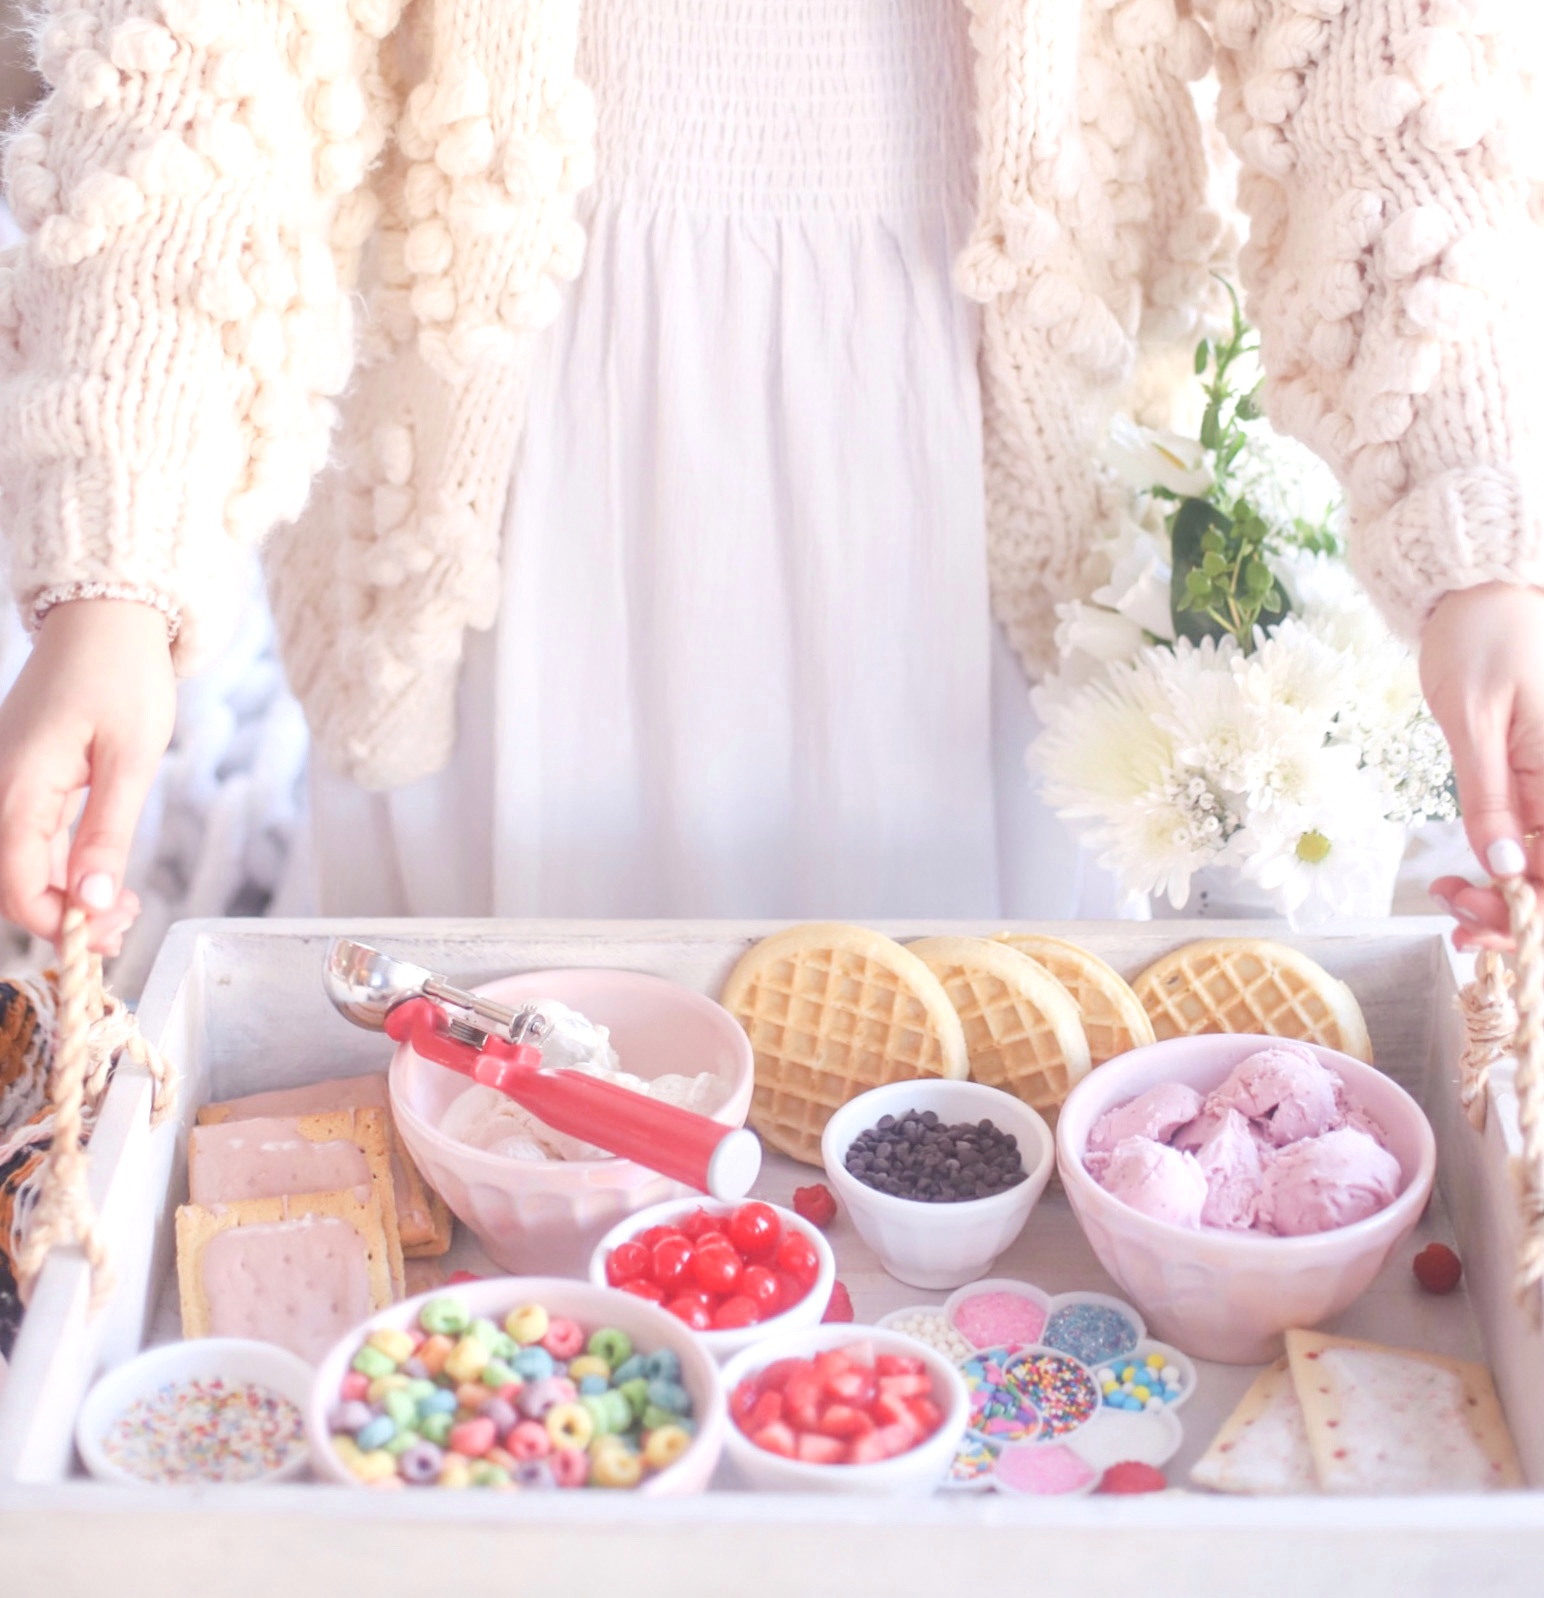 woman holding a tray with Create-Your-Own Ice Cream and toppings